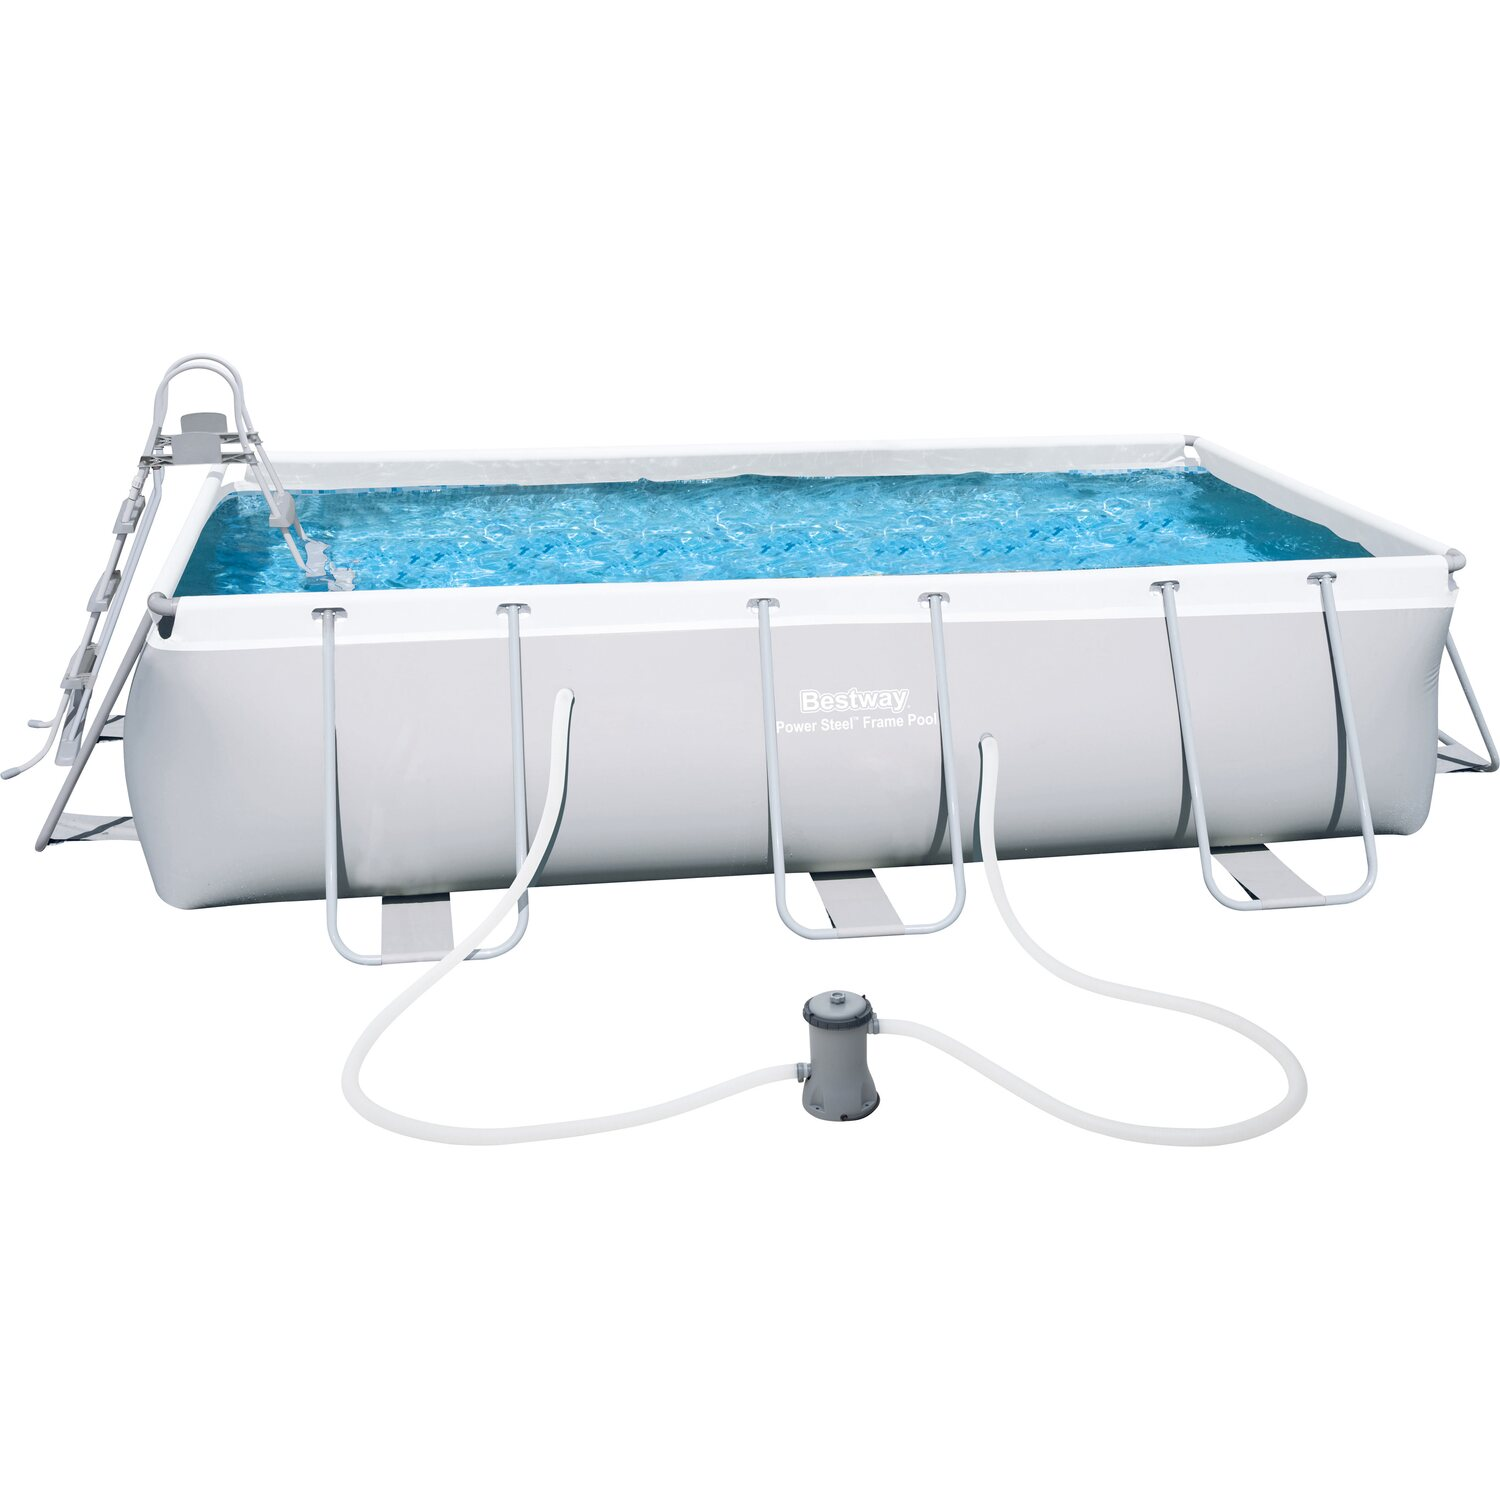 Gartenpool eckig swalif for Bestway pool bei obi